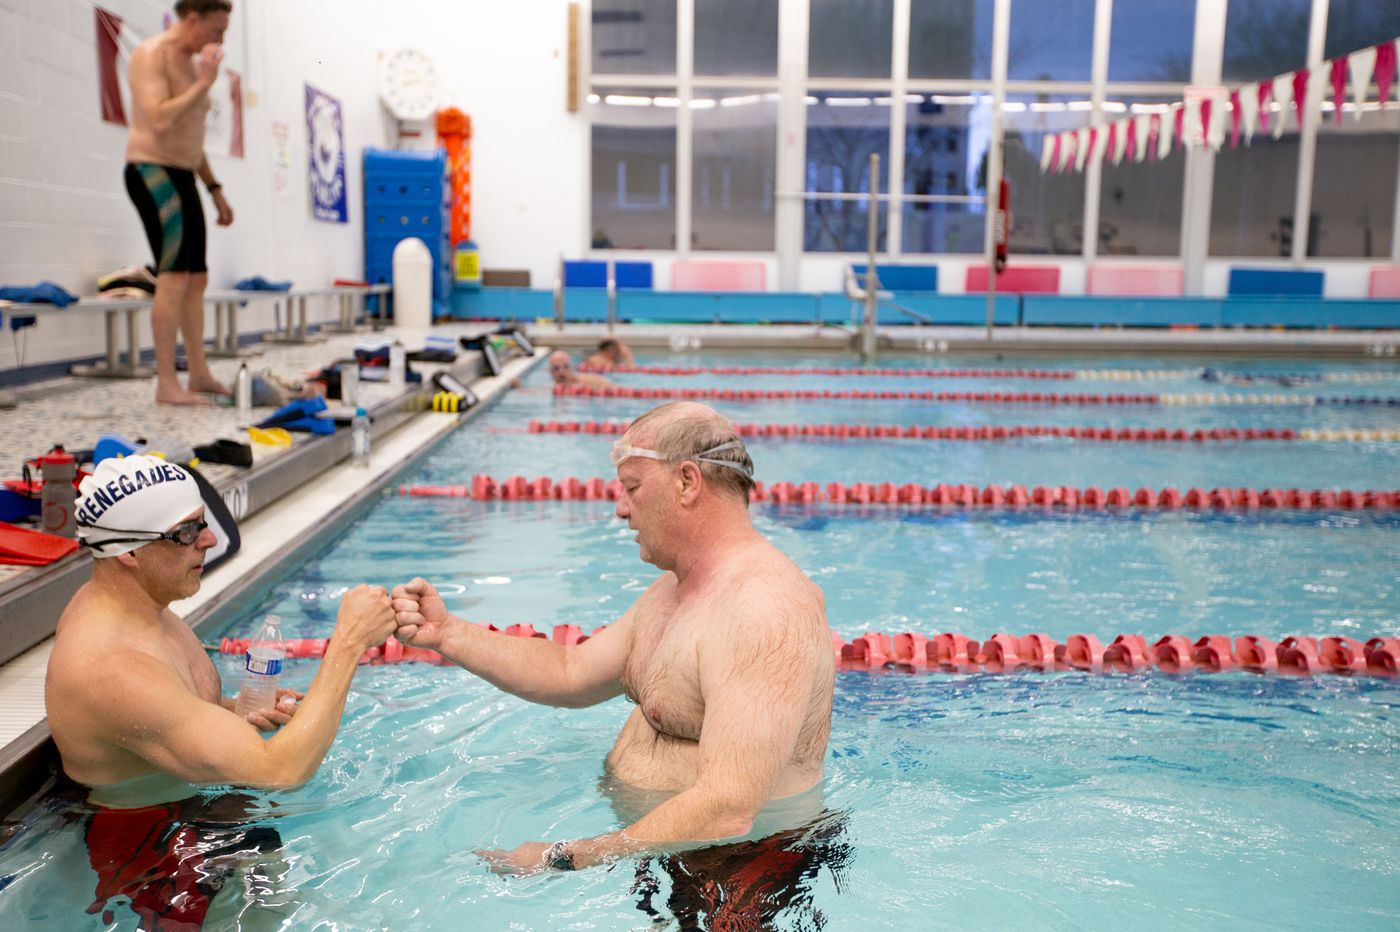 Rowan College is closing its public pool in Pemberton. Now, residents are trying to save it.